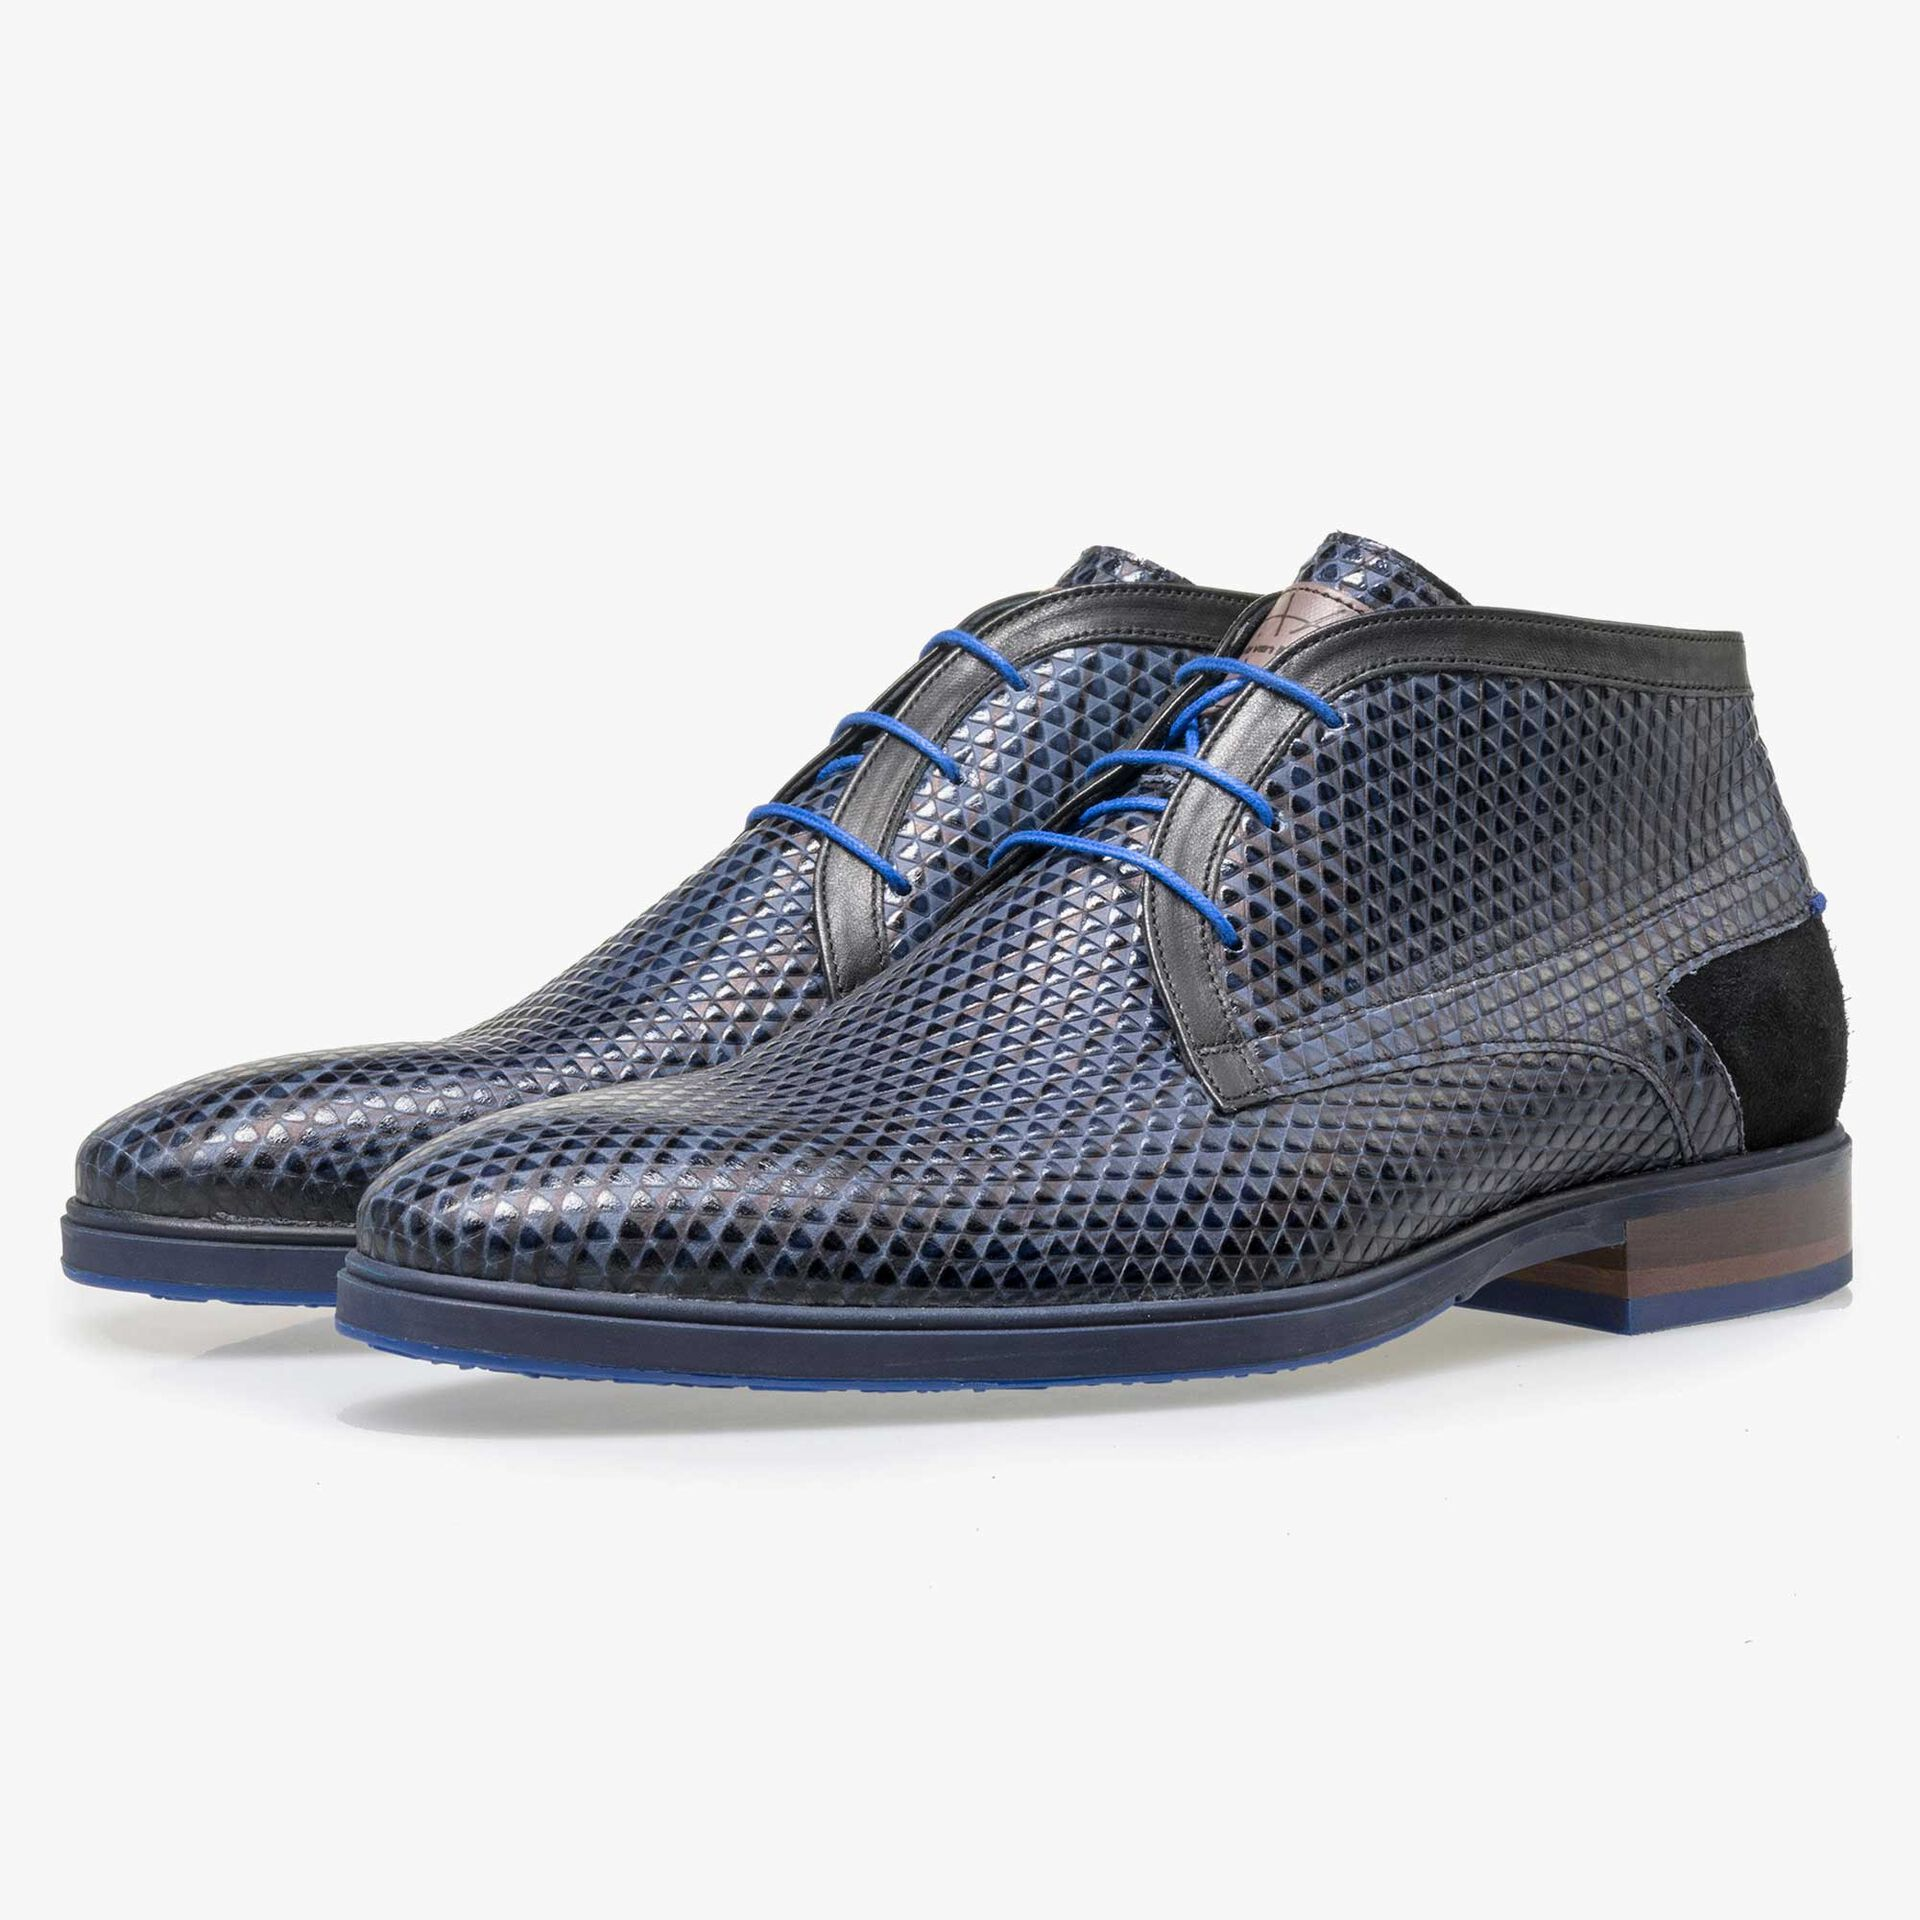 Floris van Bommel men's blue lace boot finished with a triangular pattern